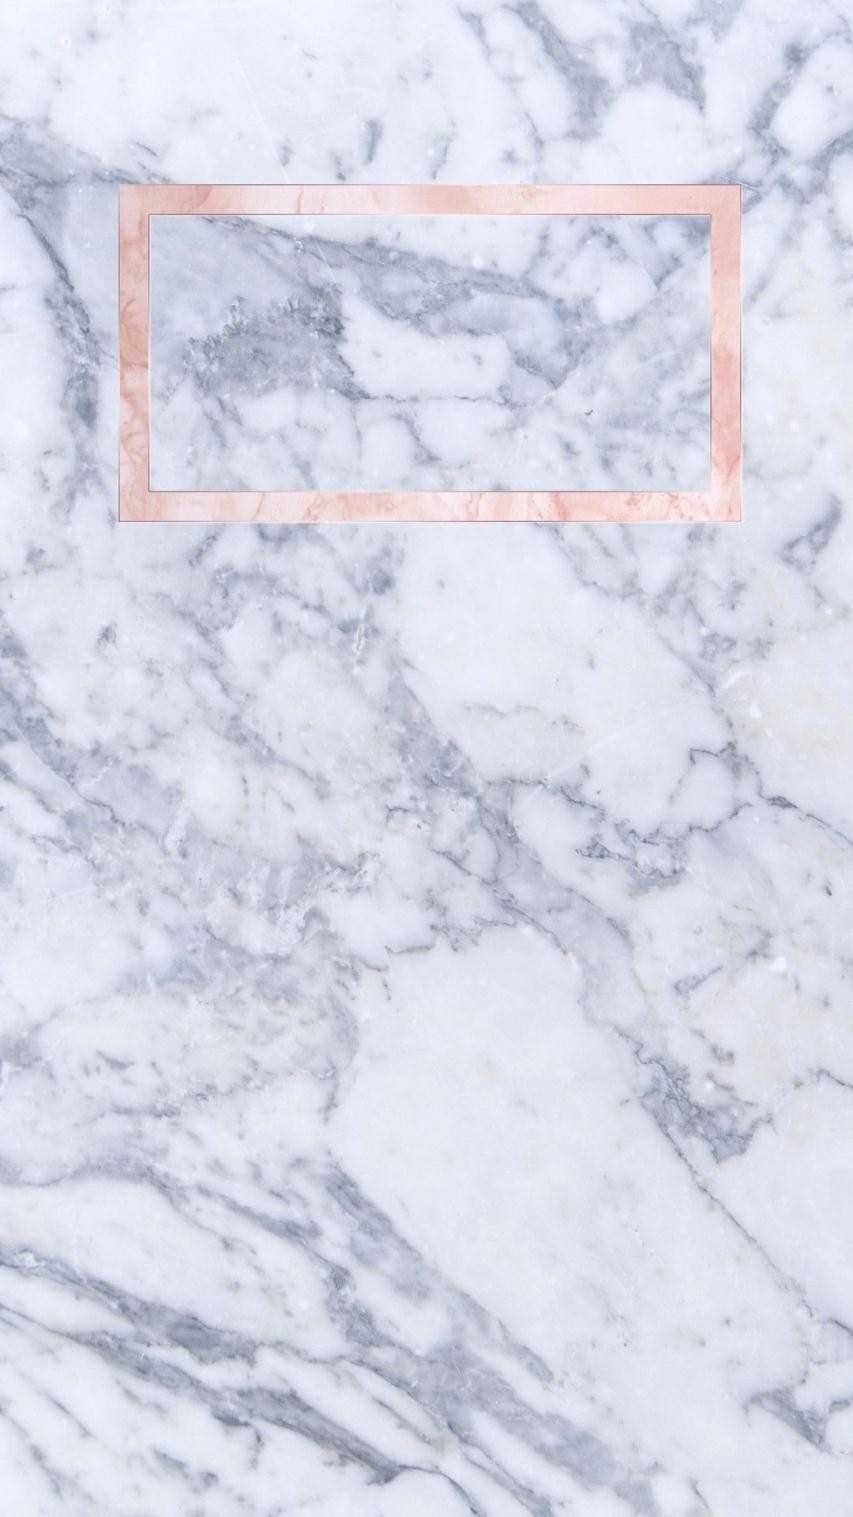 Pin By Yensafriana On Screenshots Marble Iphone Wallpaper Iphone Wallpaper White Marble Iphone